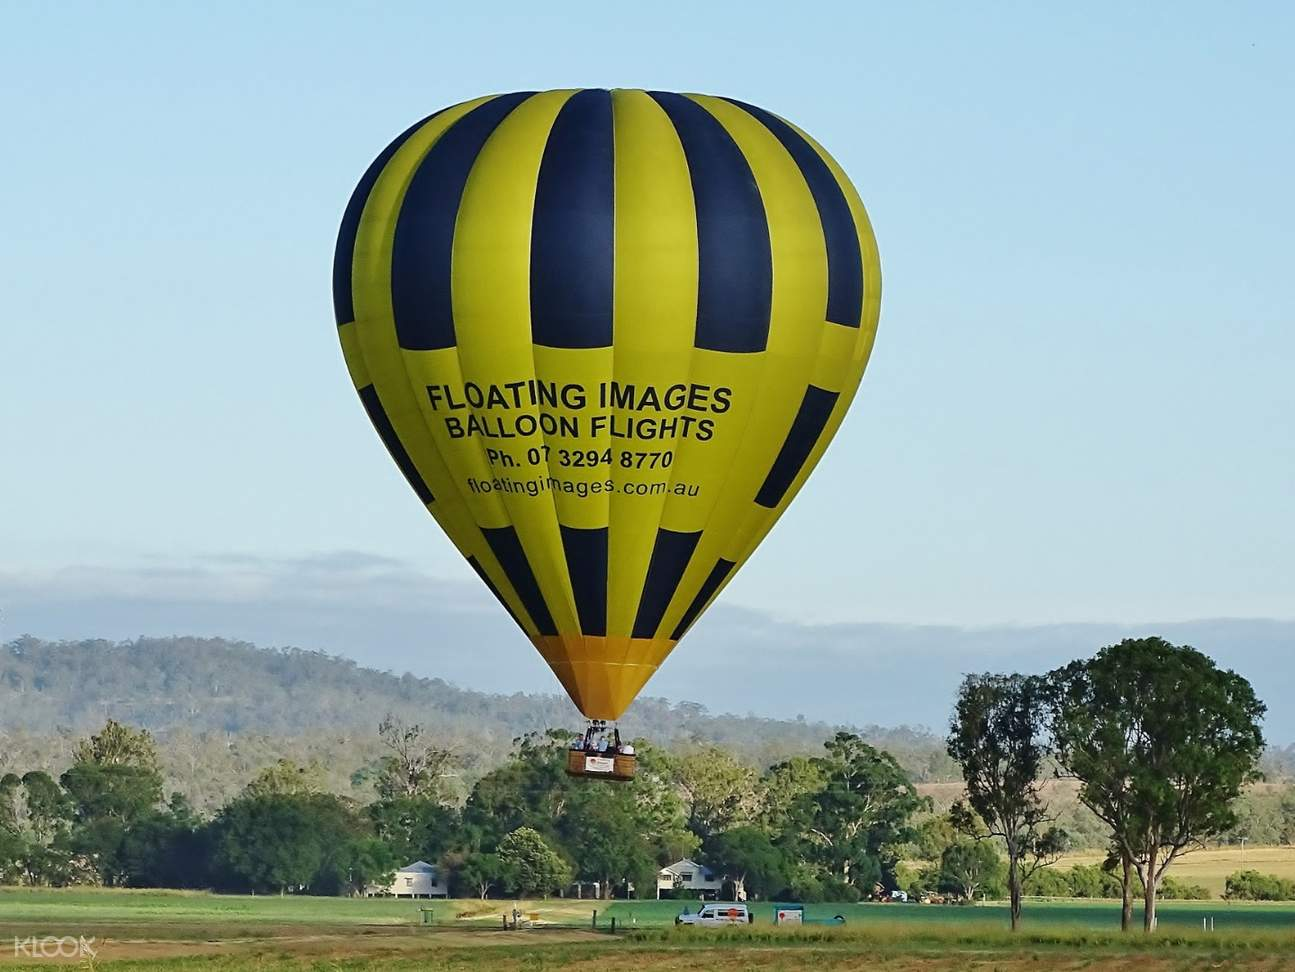 hot air balloon slowly lifting off grounds